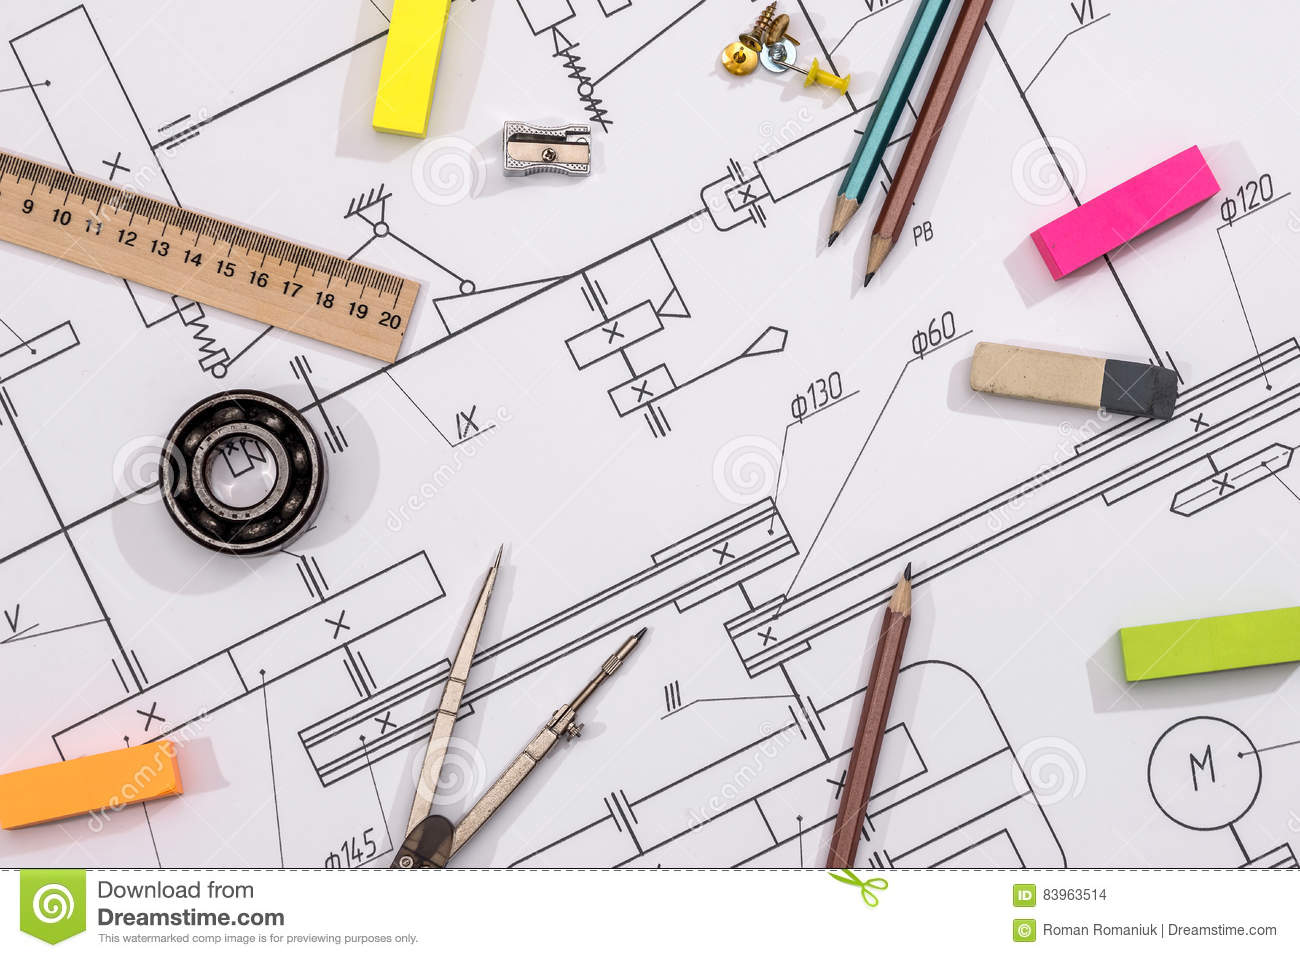 Technical Drawing Tool - Rebellions